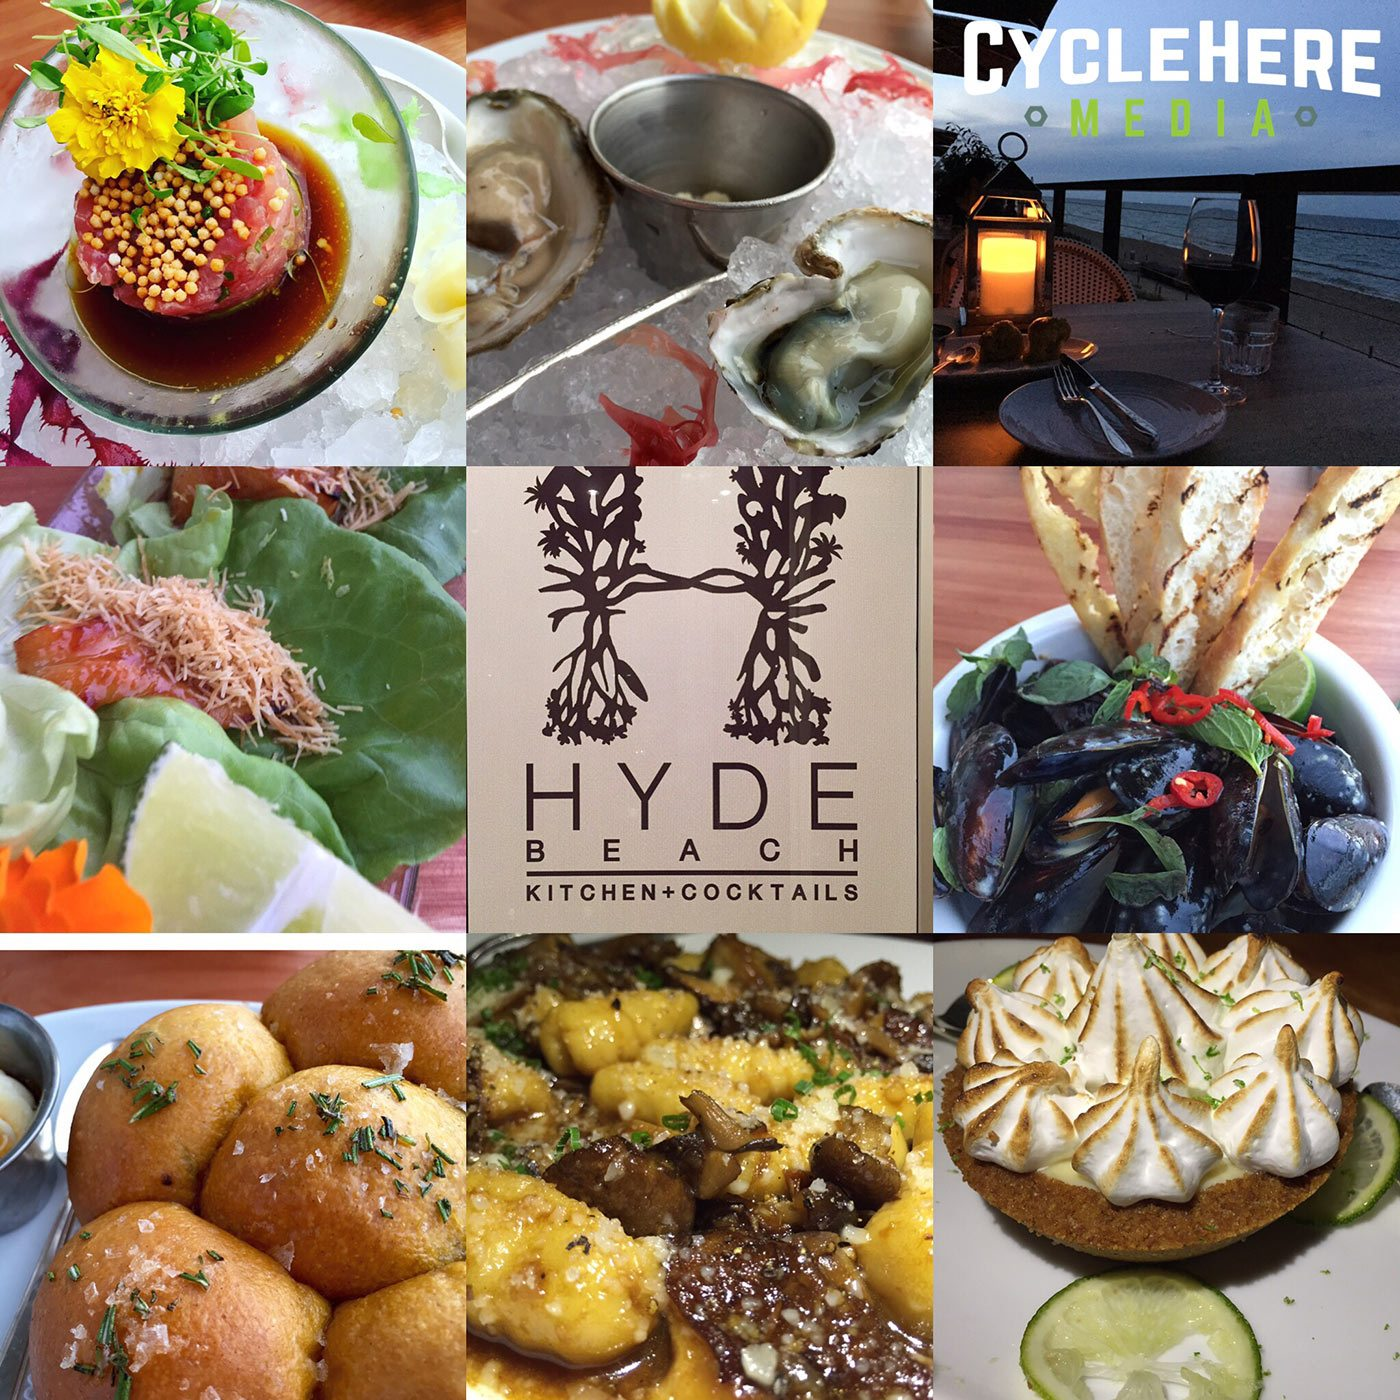 HydeBeach-Kitchen+Cocktails